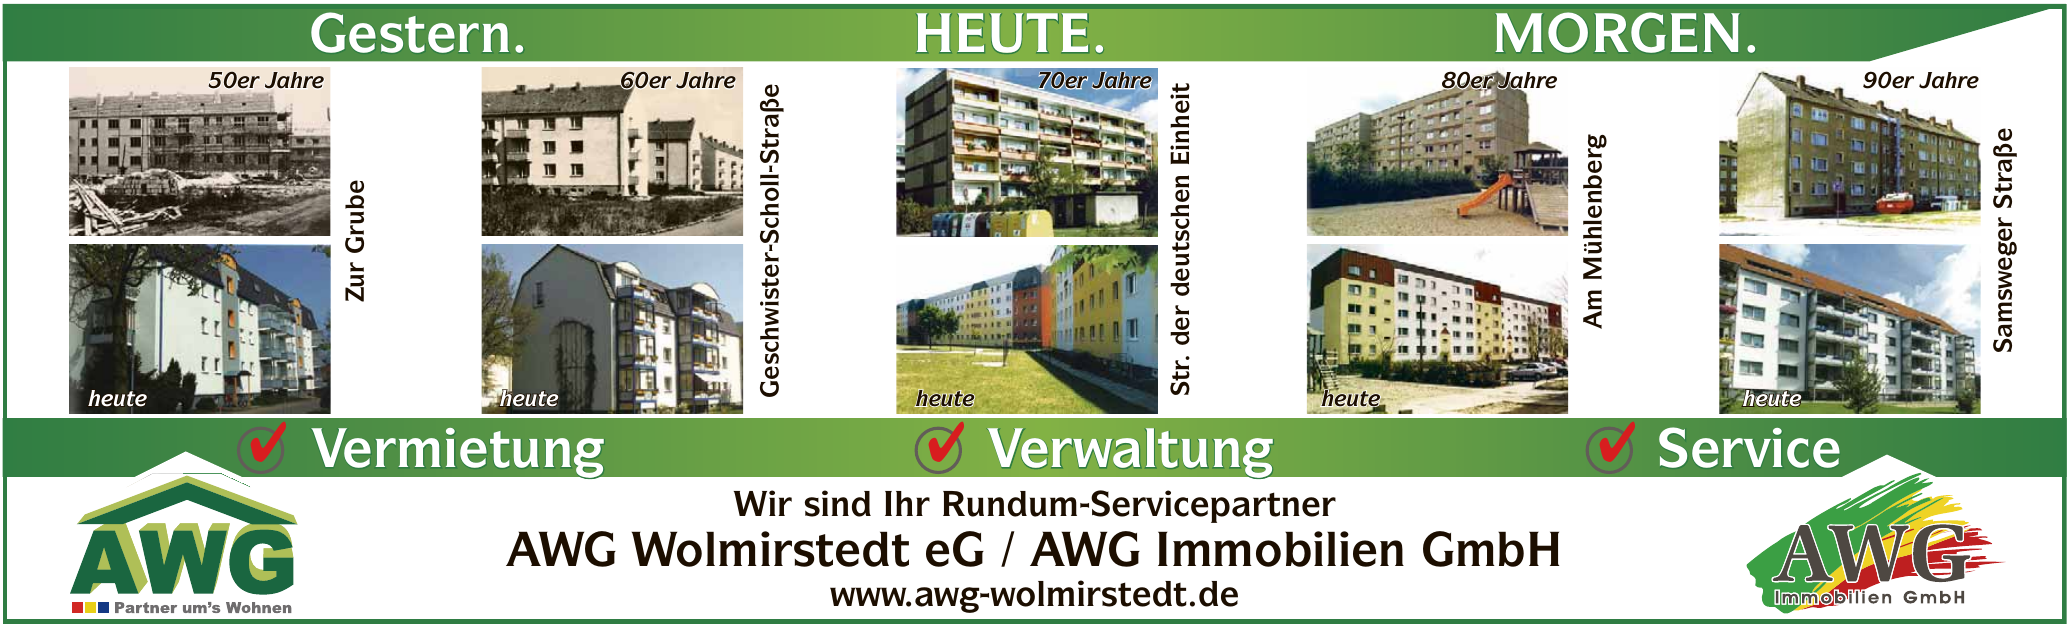 AWG Wolmirstedt eG / AWG Immobilien GmbH